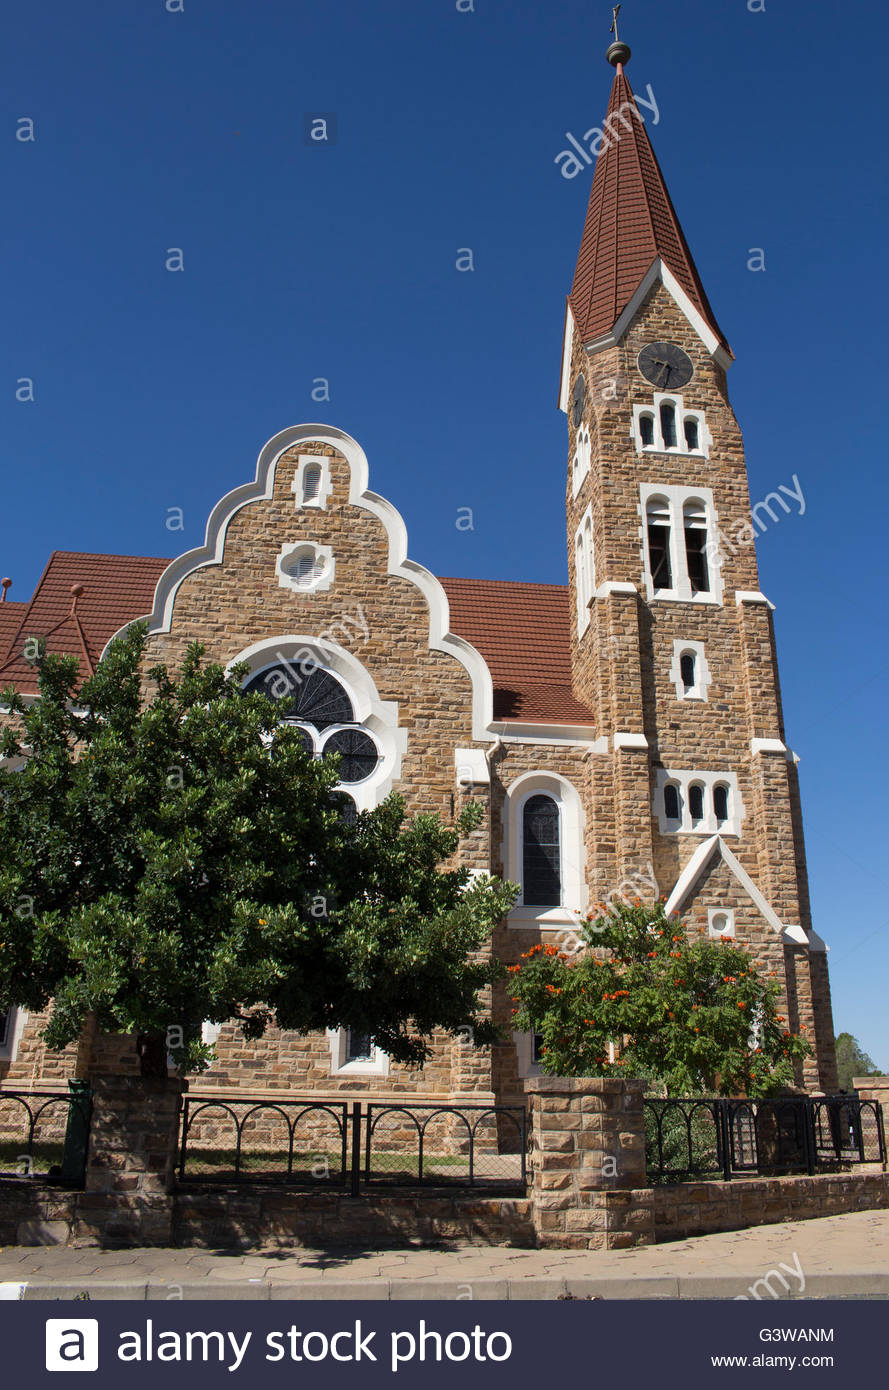 The Christ Church in Windhoek, Namibia - Stock Image